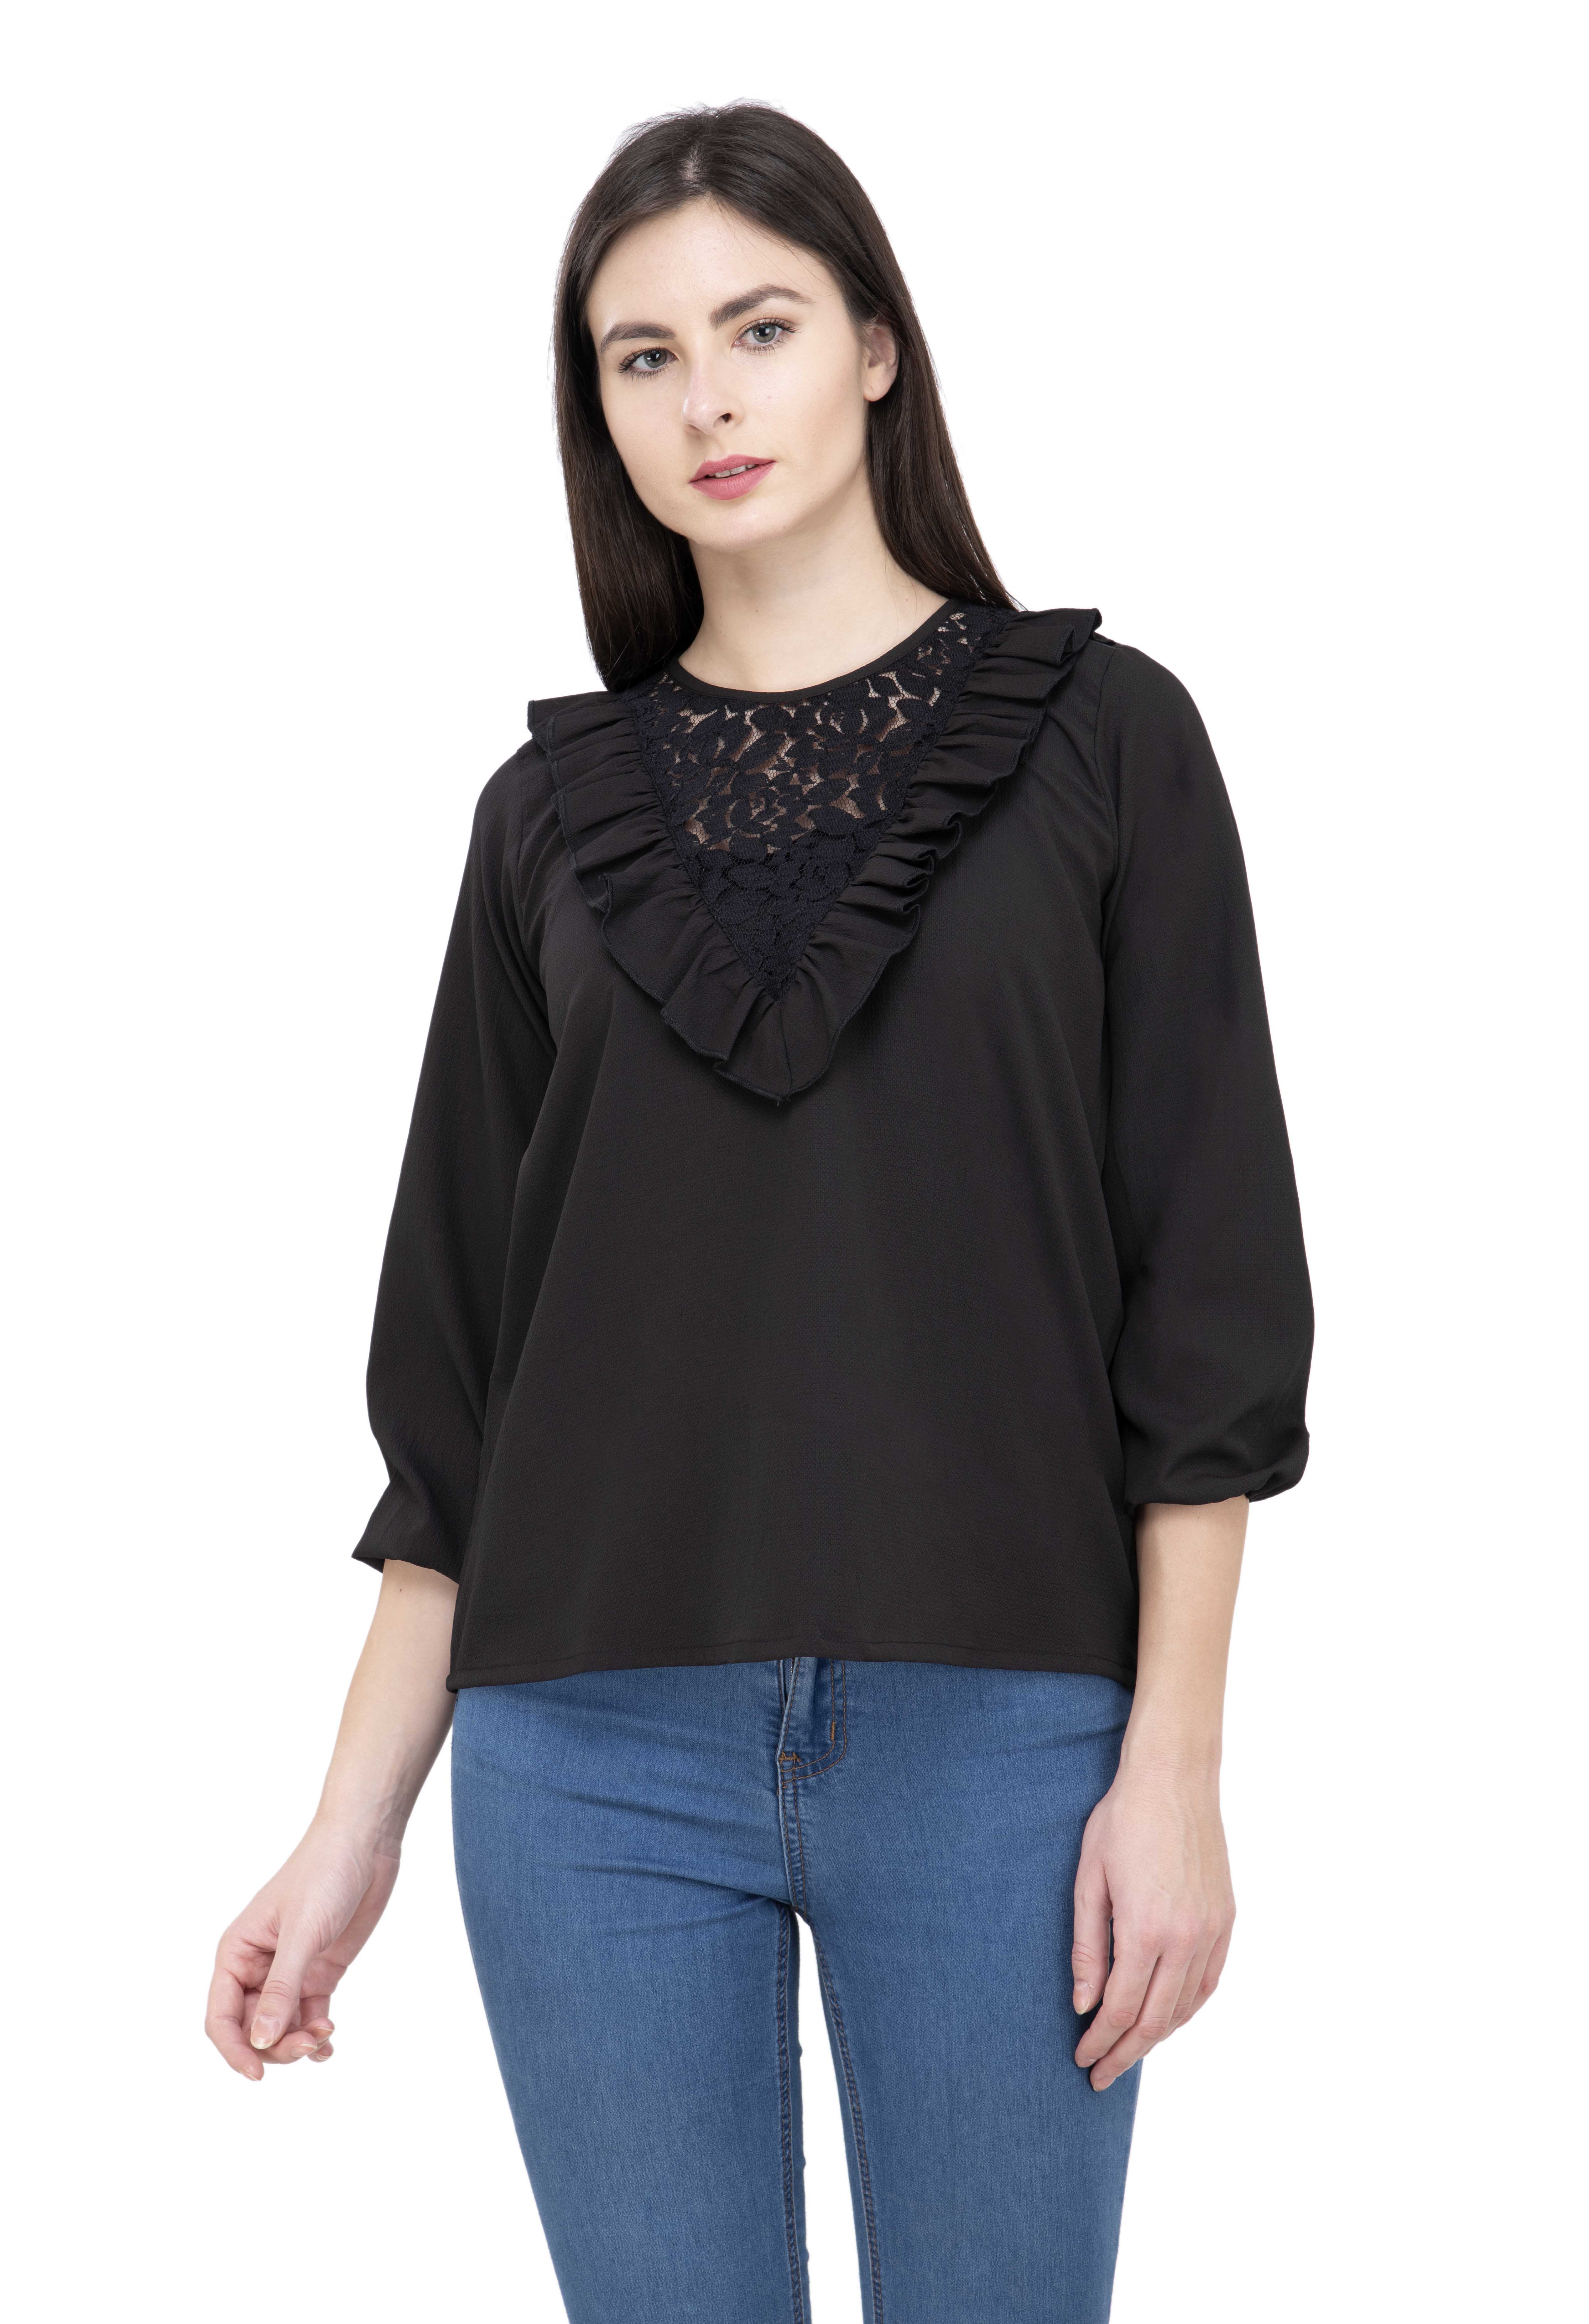 POPWINGS Casual full Sleeves round neck self design crepe solid black women top